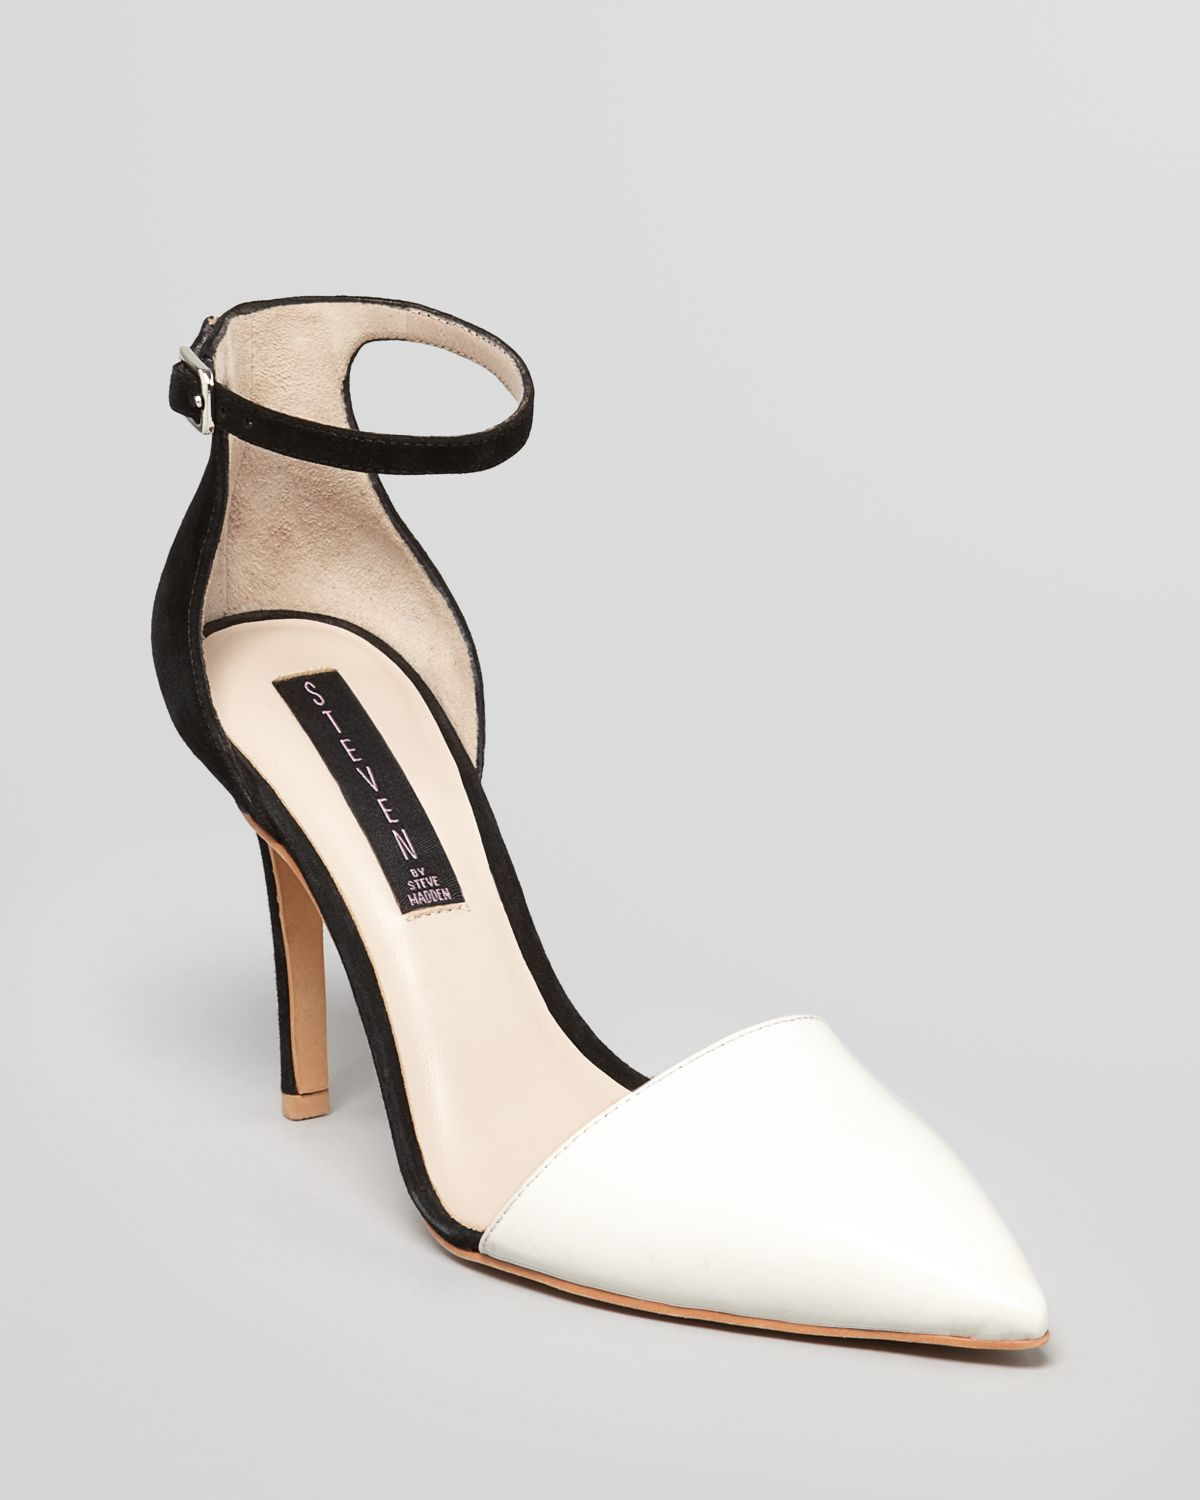 Lyst - Steven by steve madden Pointed Toe Pumps Anibell 2 Tone ...